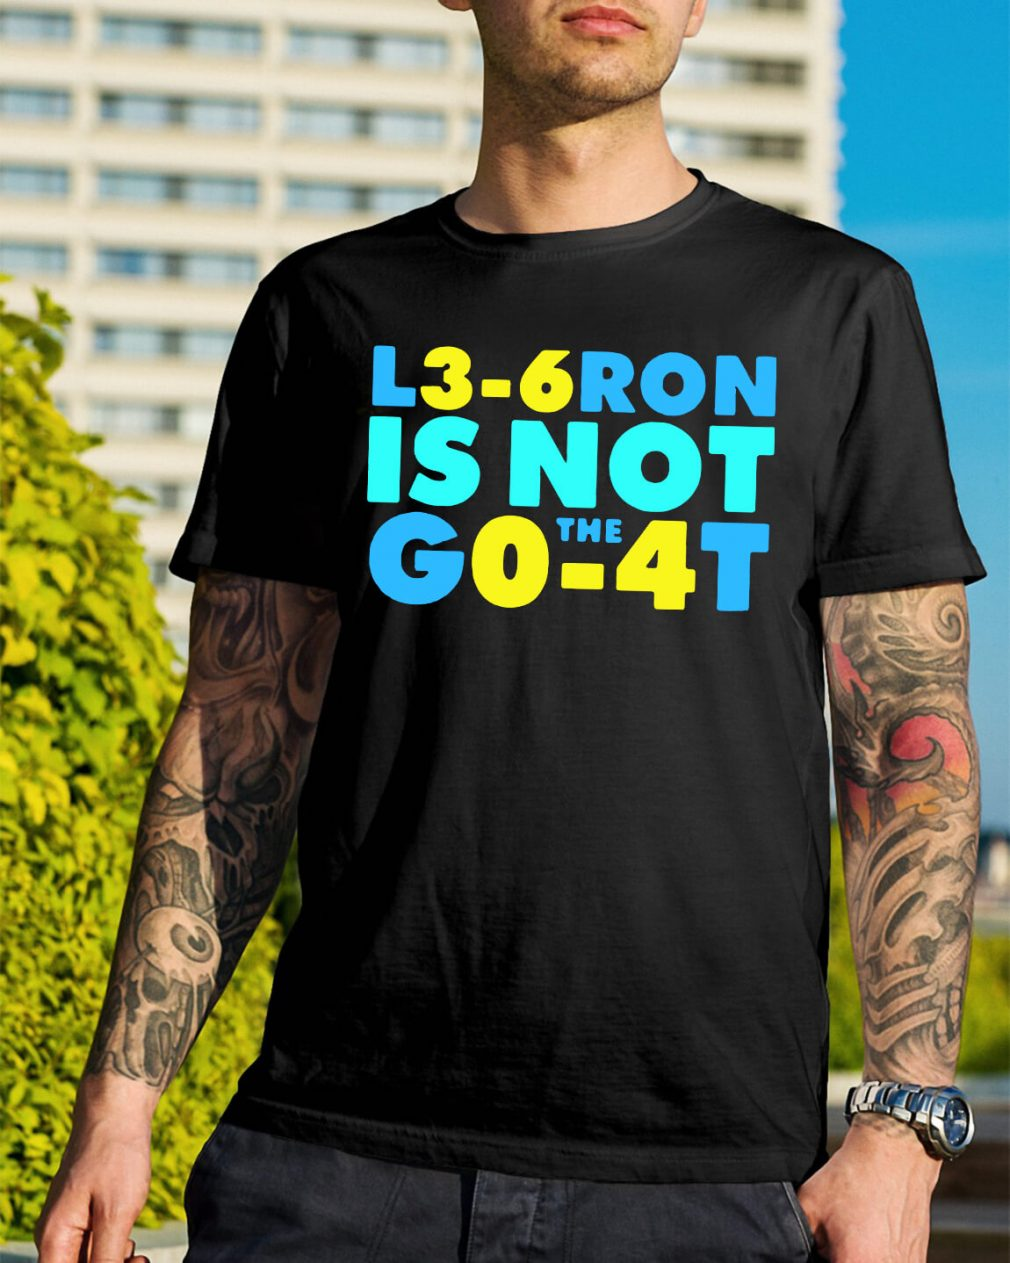 L3-6ron is not the go-4t shirt